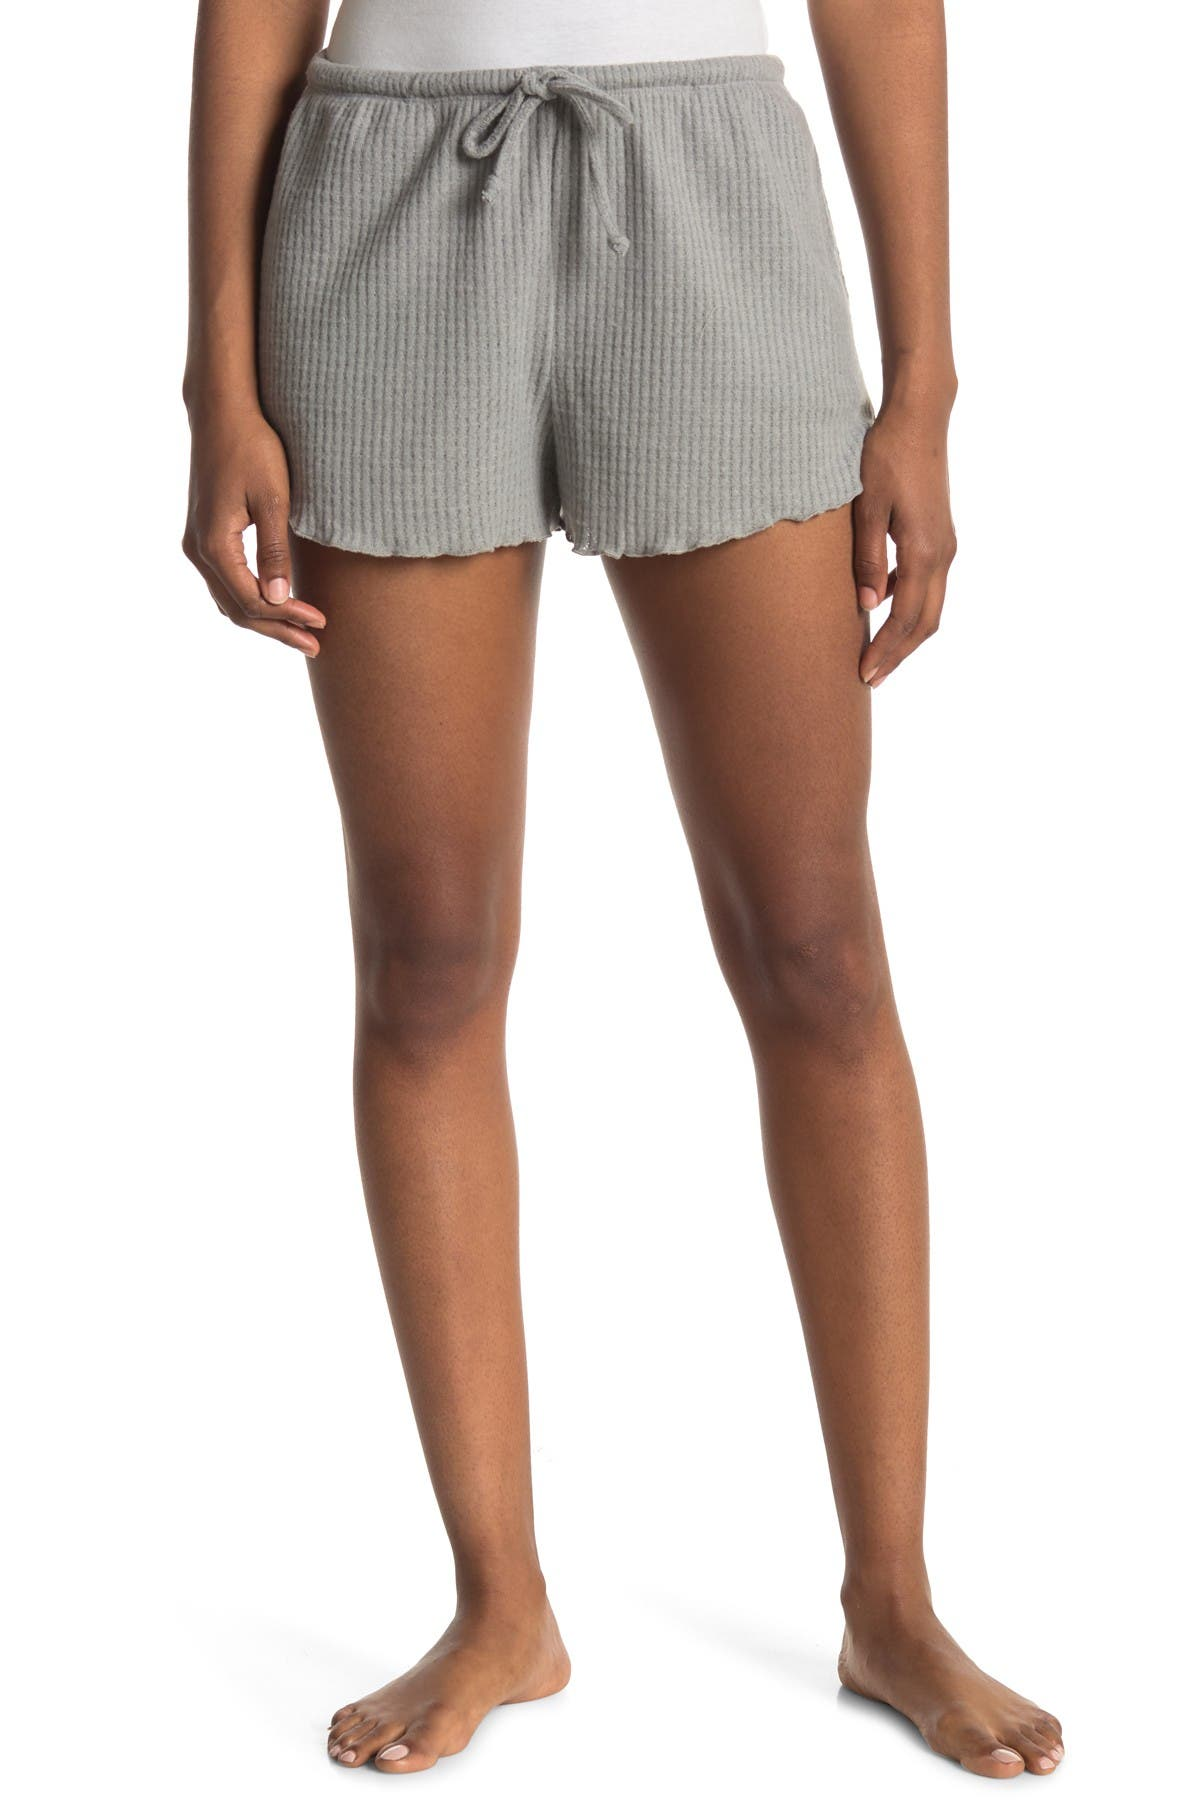 Image of Socialite Lettuce Edge Ribbed Knit Shorts